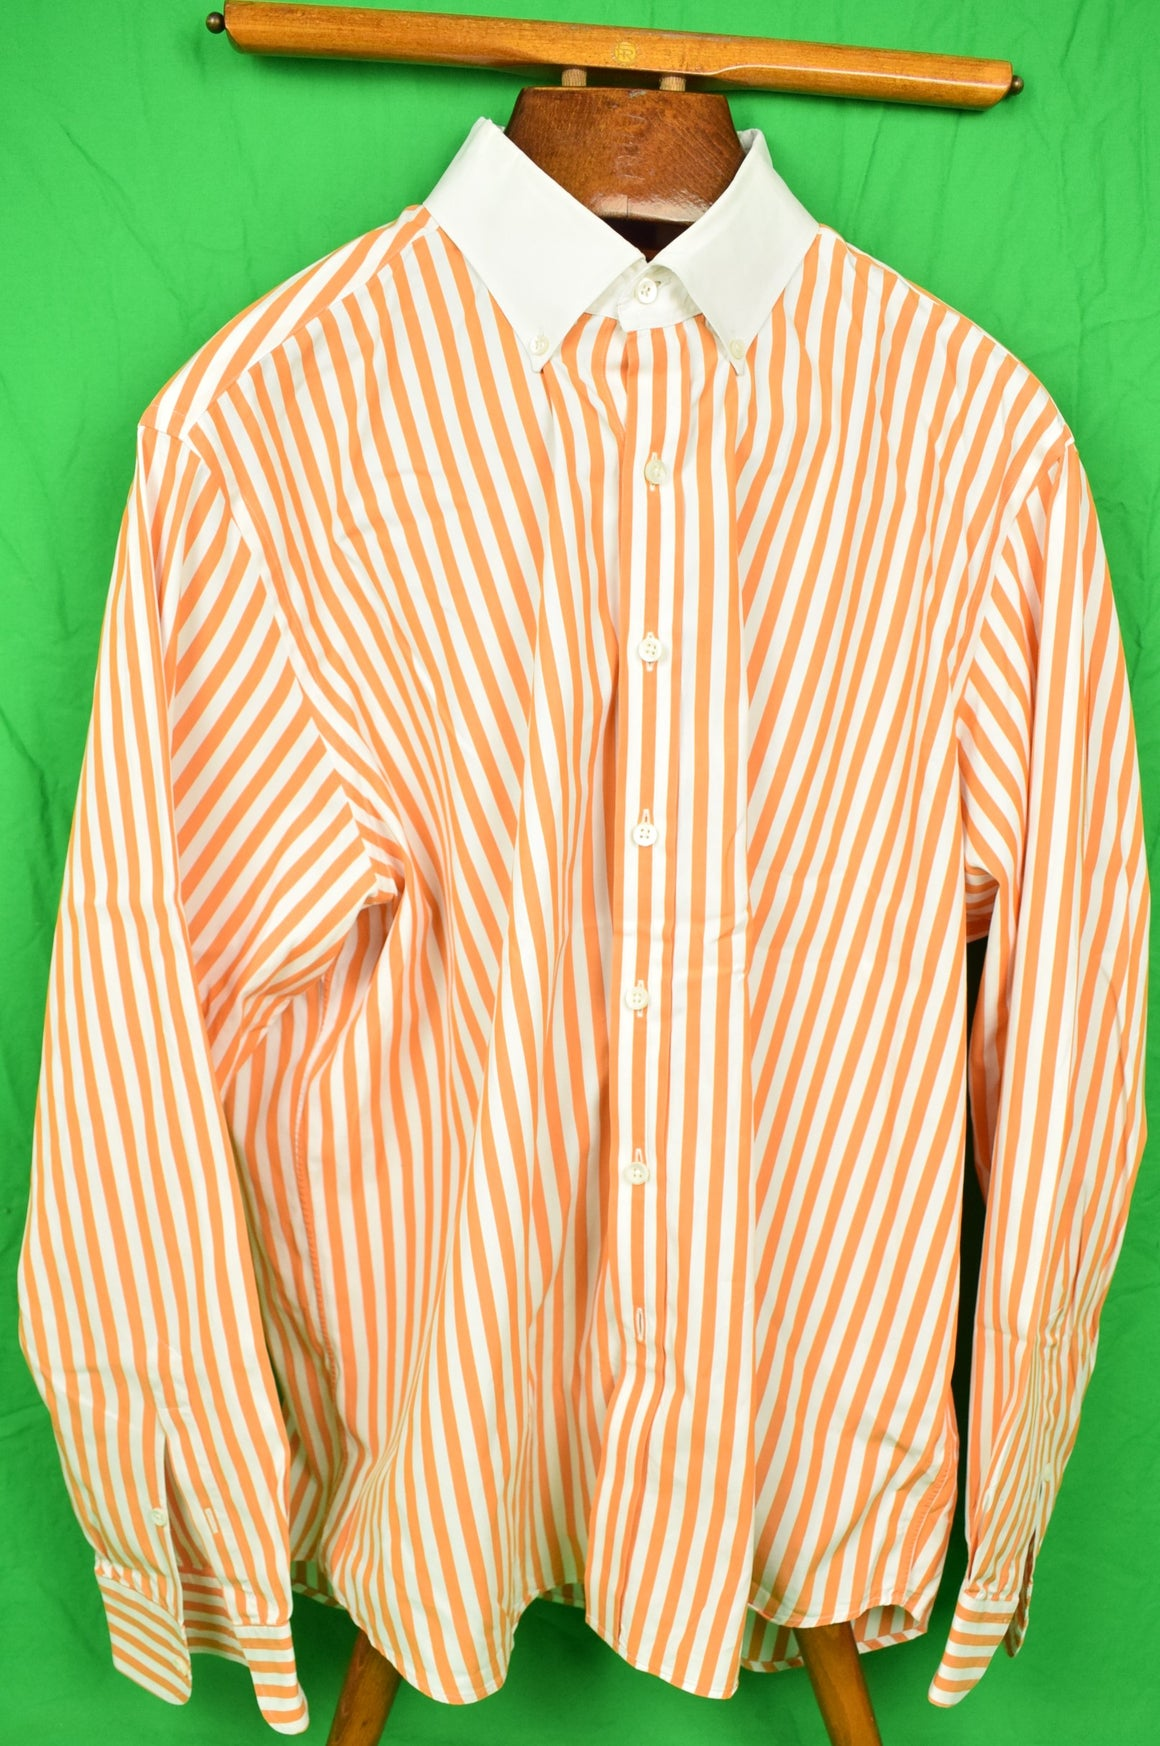 Ralph Lauren Purple Label Orange Bengal Stripe Dress Shirt w/ White BD Collar Sz: XXL